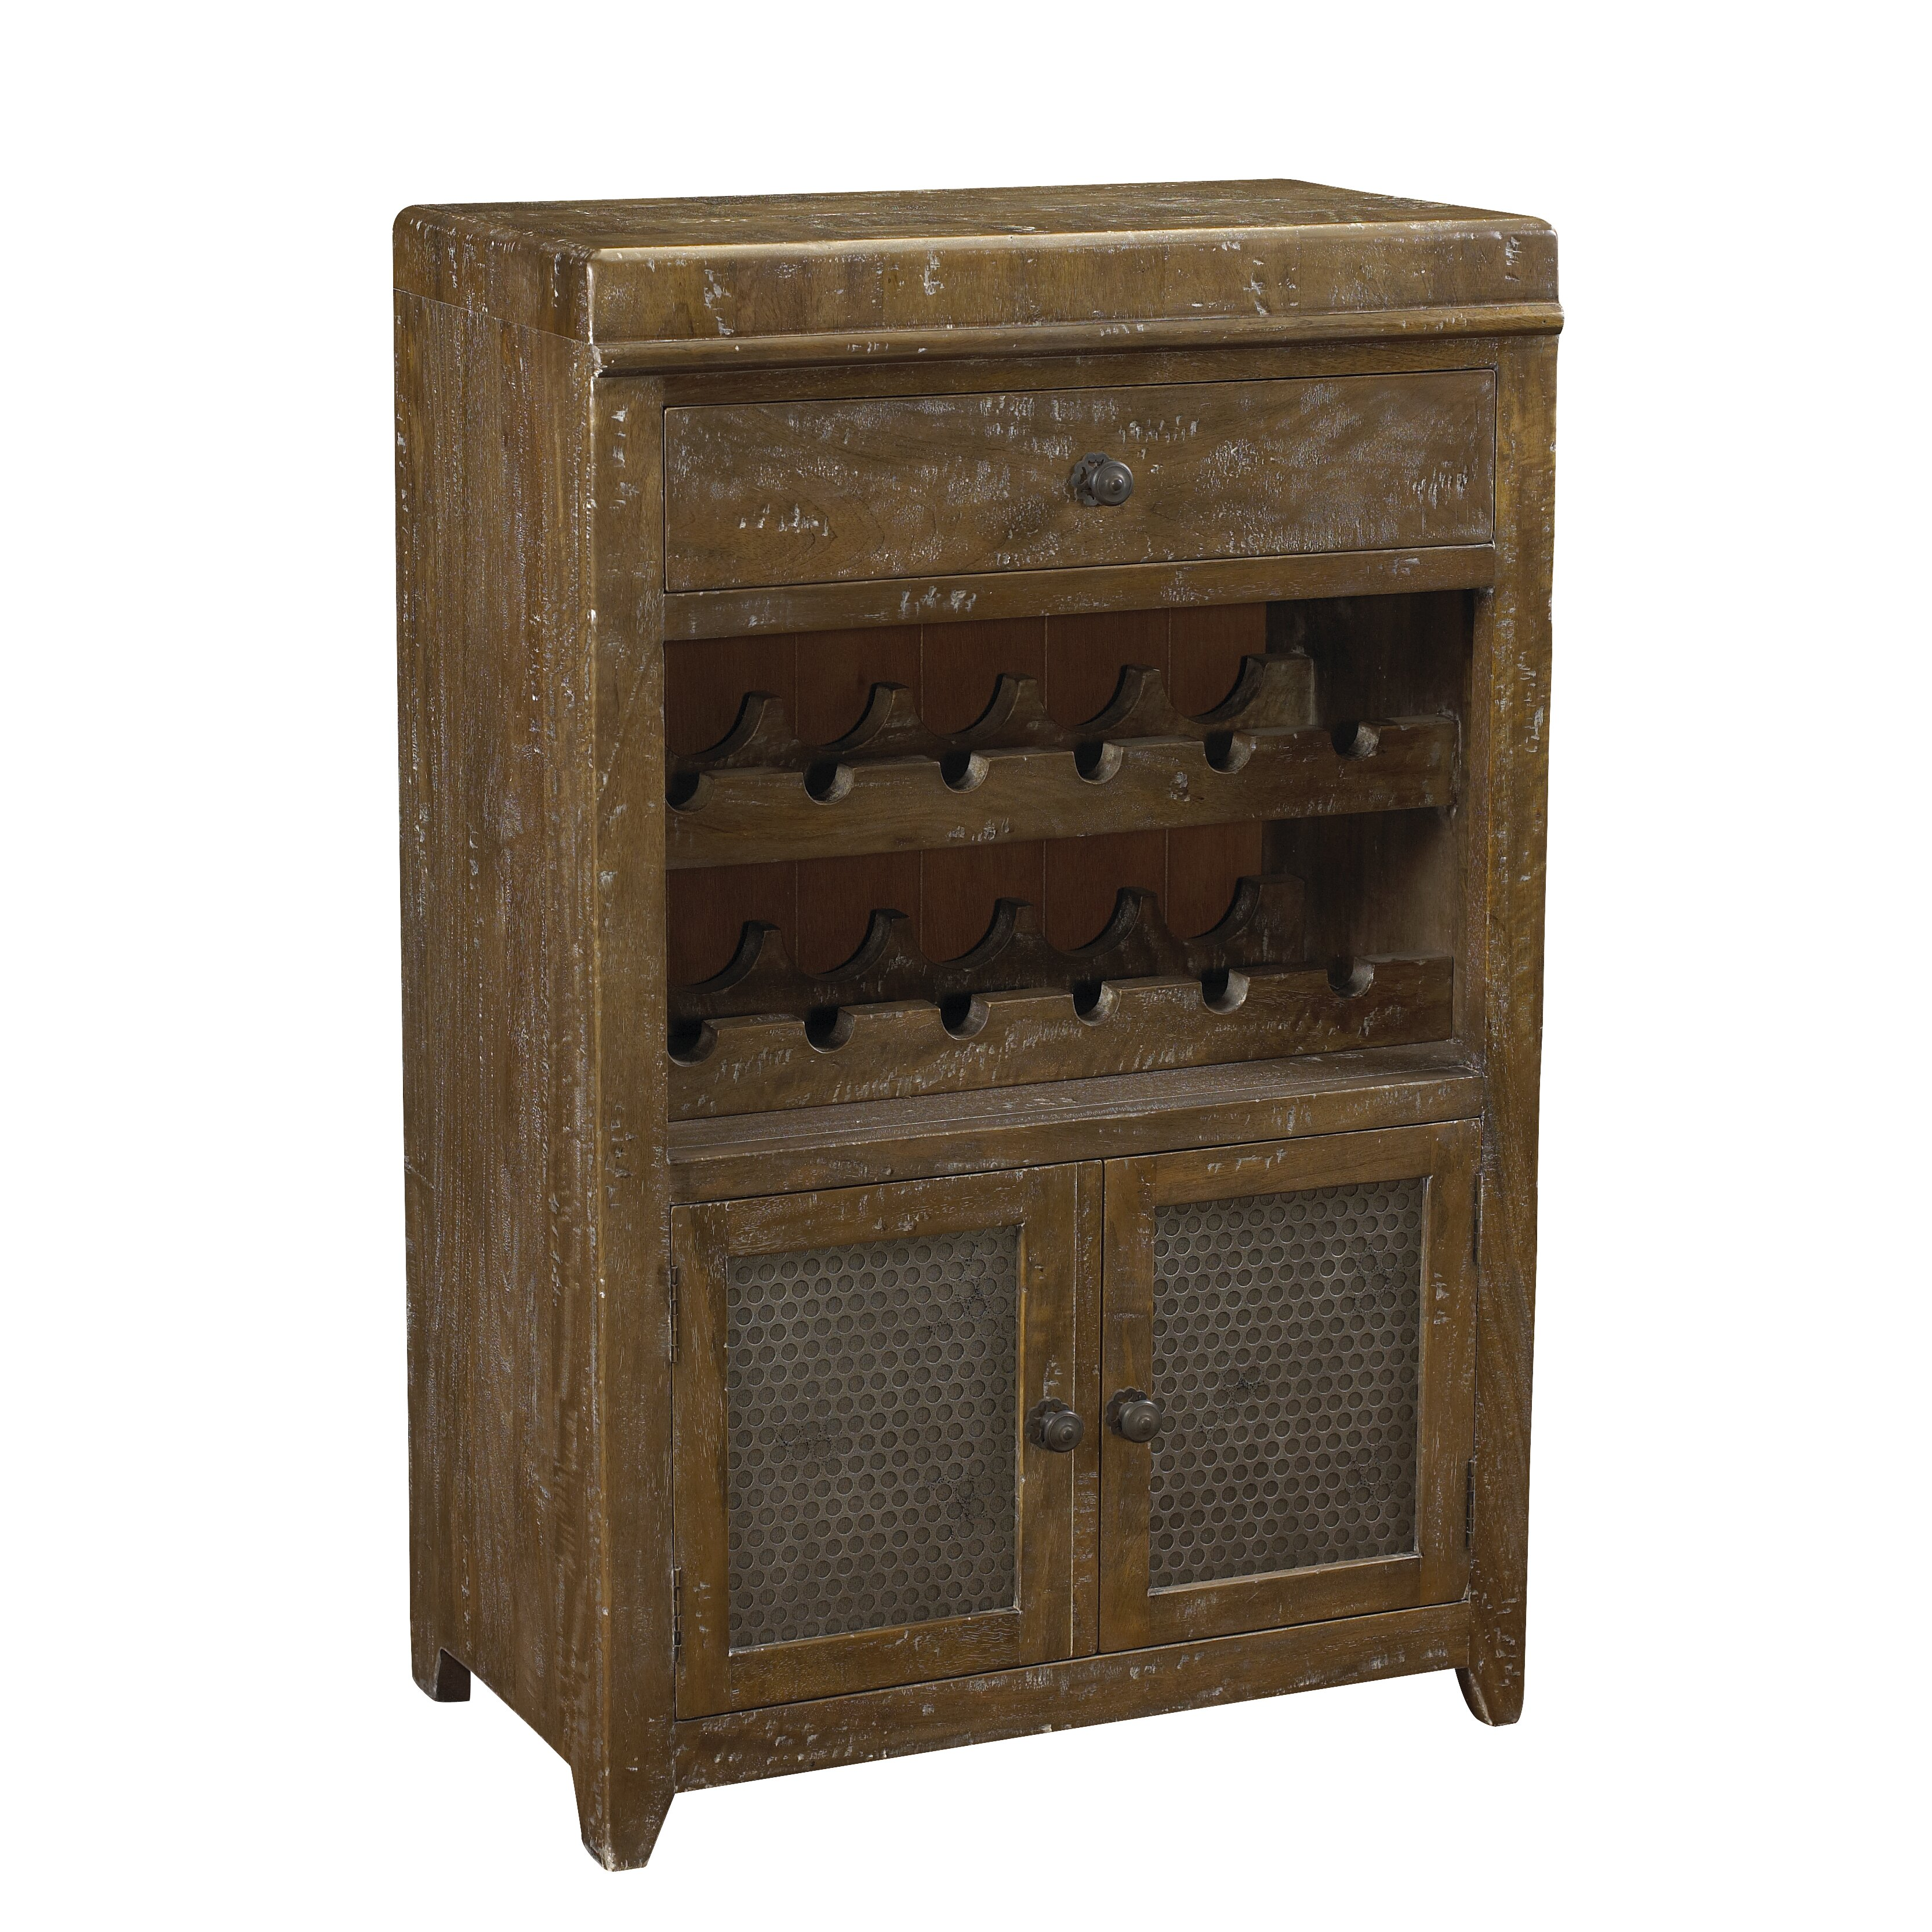 French heritage french accents 12 bottle floor wine for Floor wine cabinet